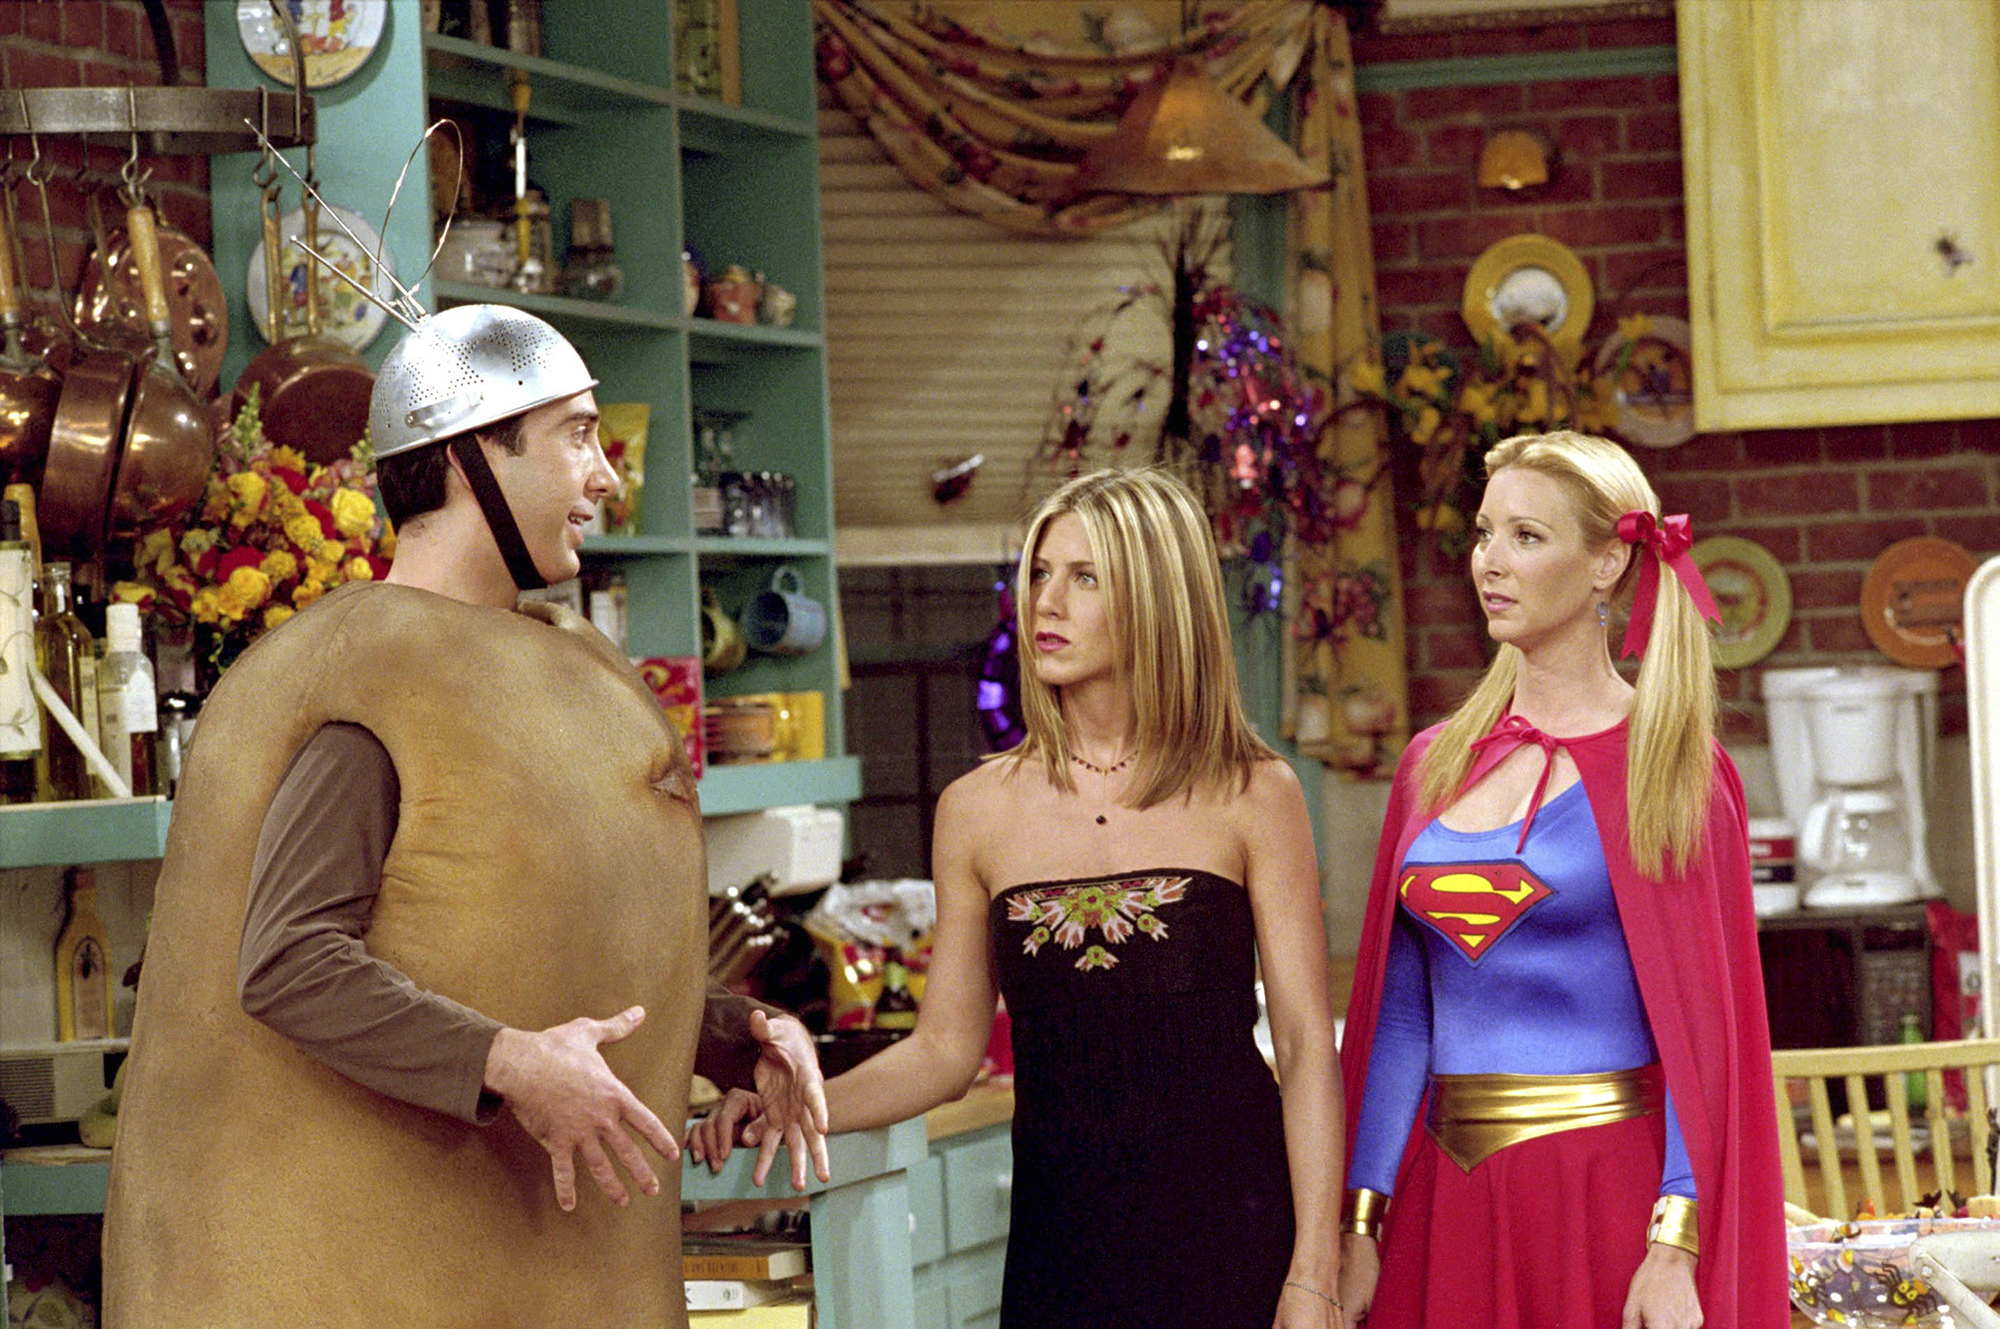 Television Episode Halloween 2020 Best Halloween TV Episodes to Watch: The Simpsons, Friends | Time